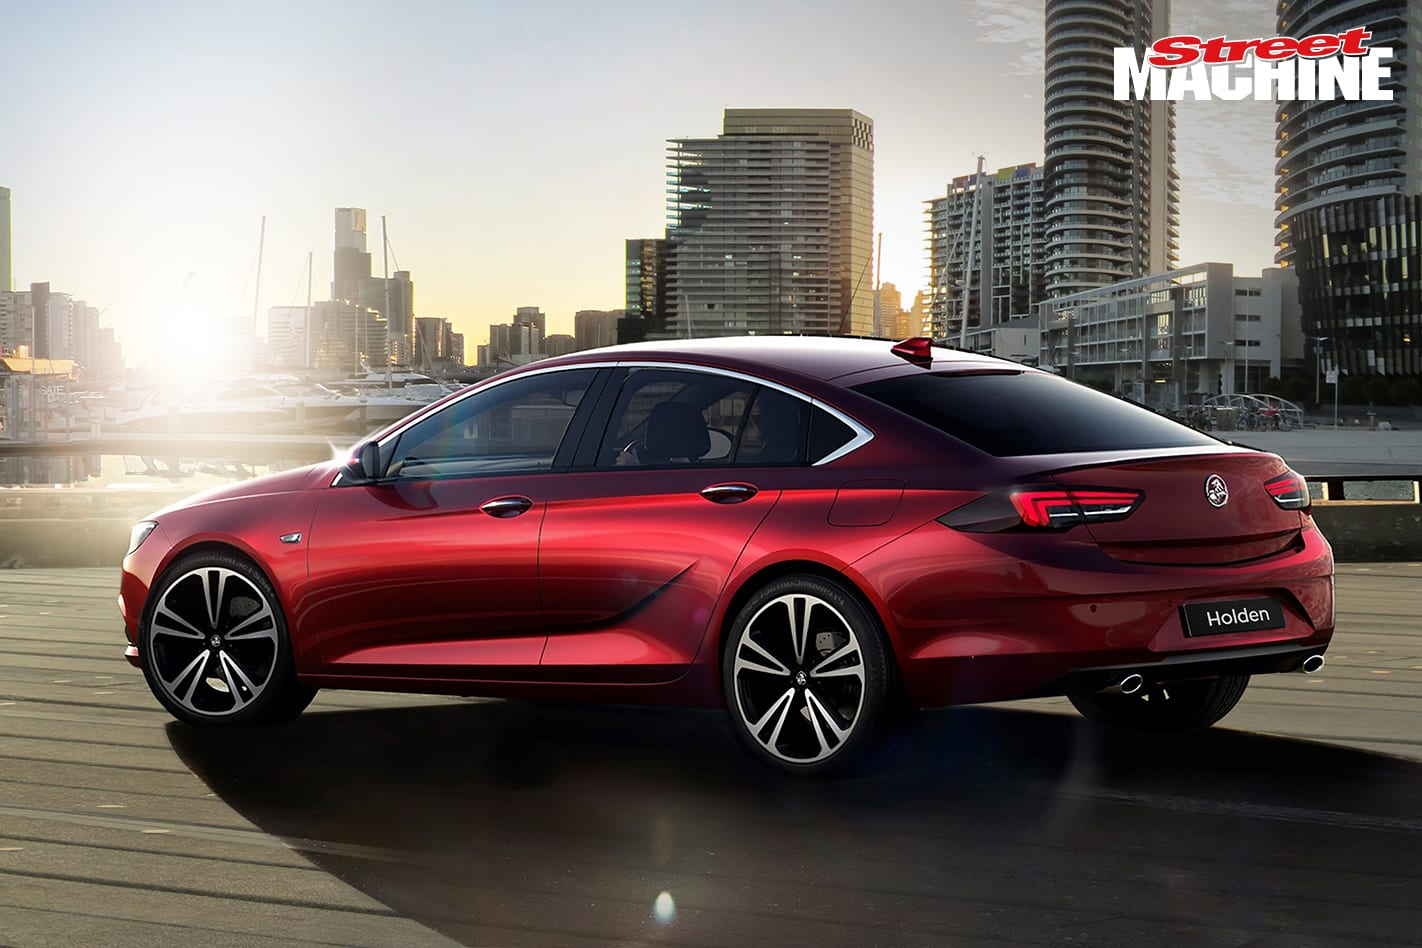 2018 Holden Commodore Side 1